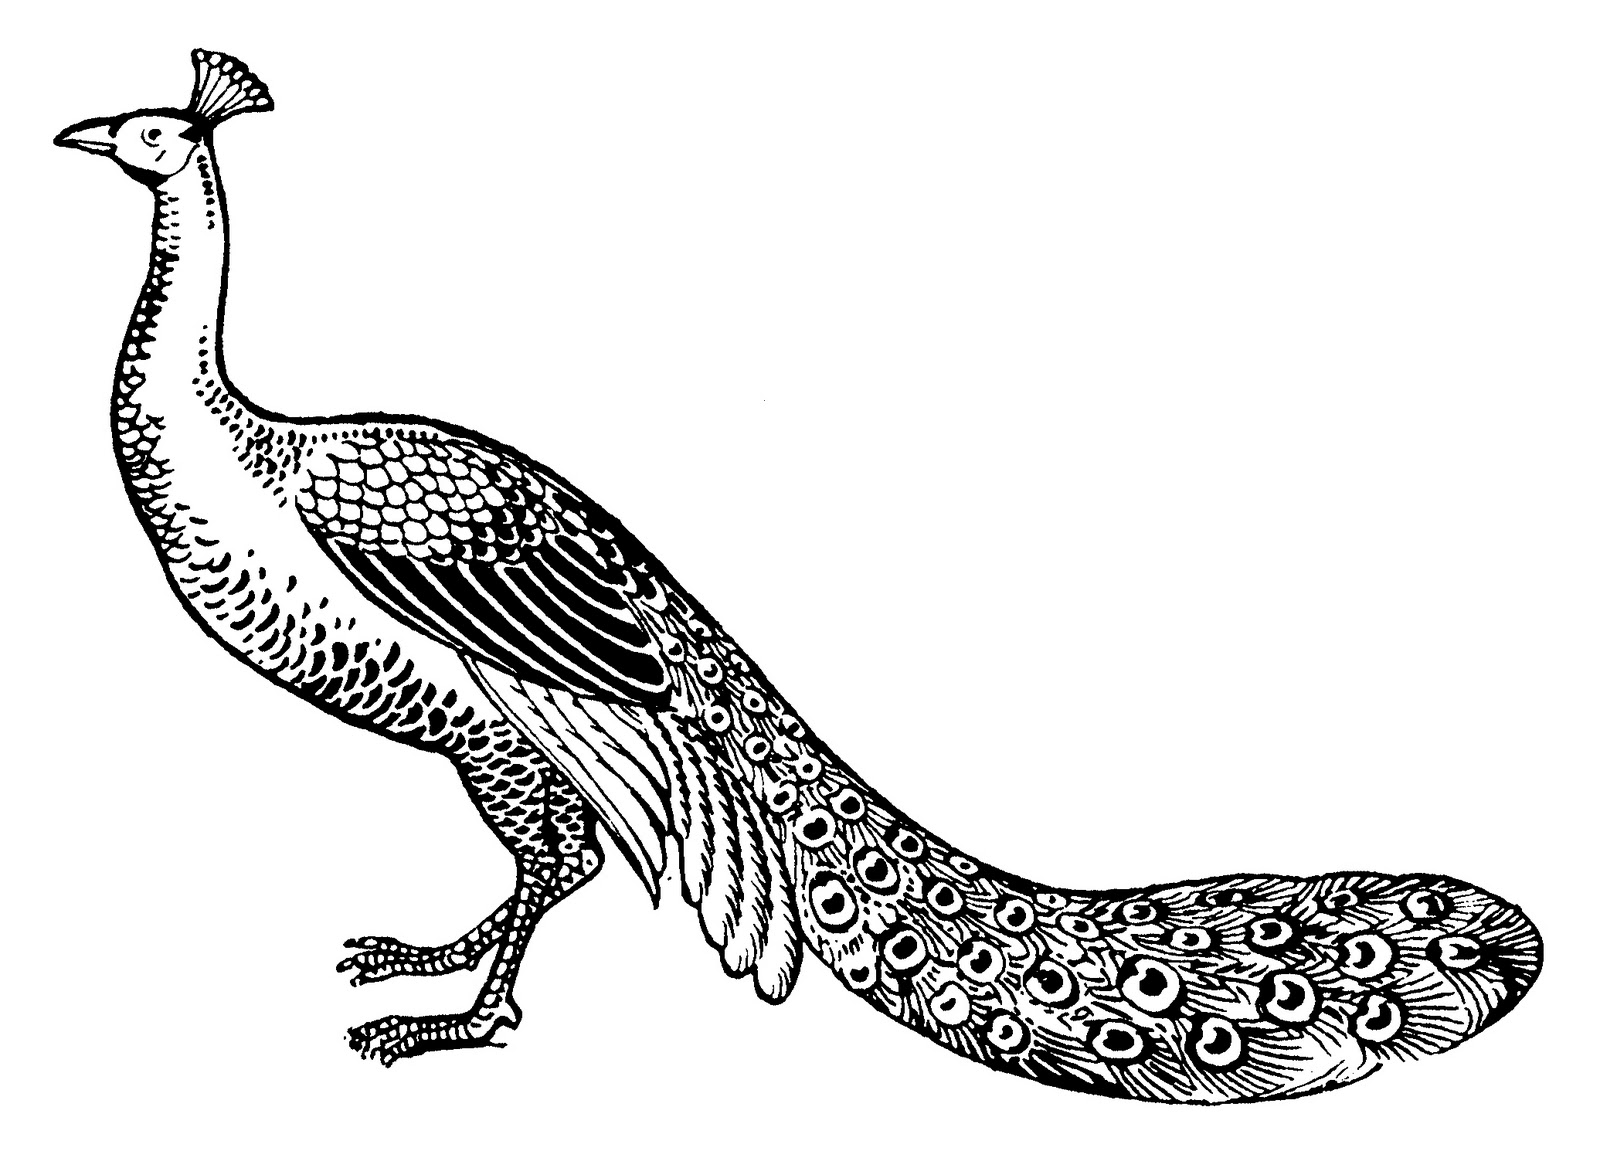 line drawing of peacock peacock drawing easy at getdrawings free download line peacock of drawing